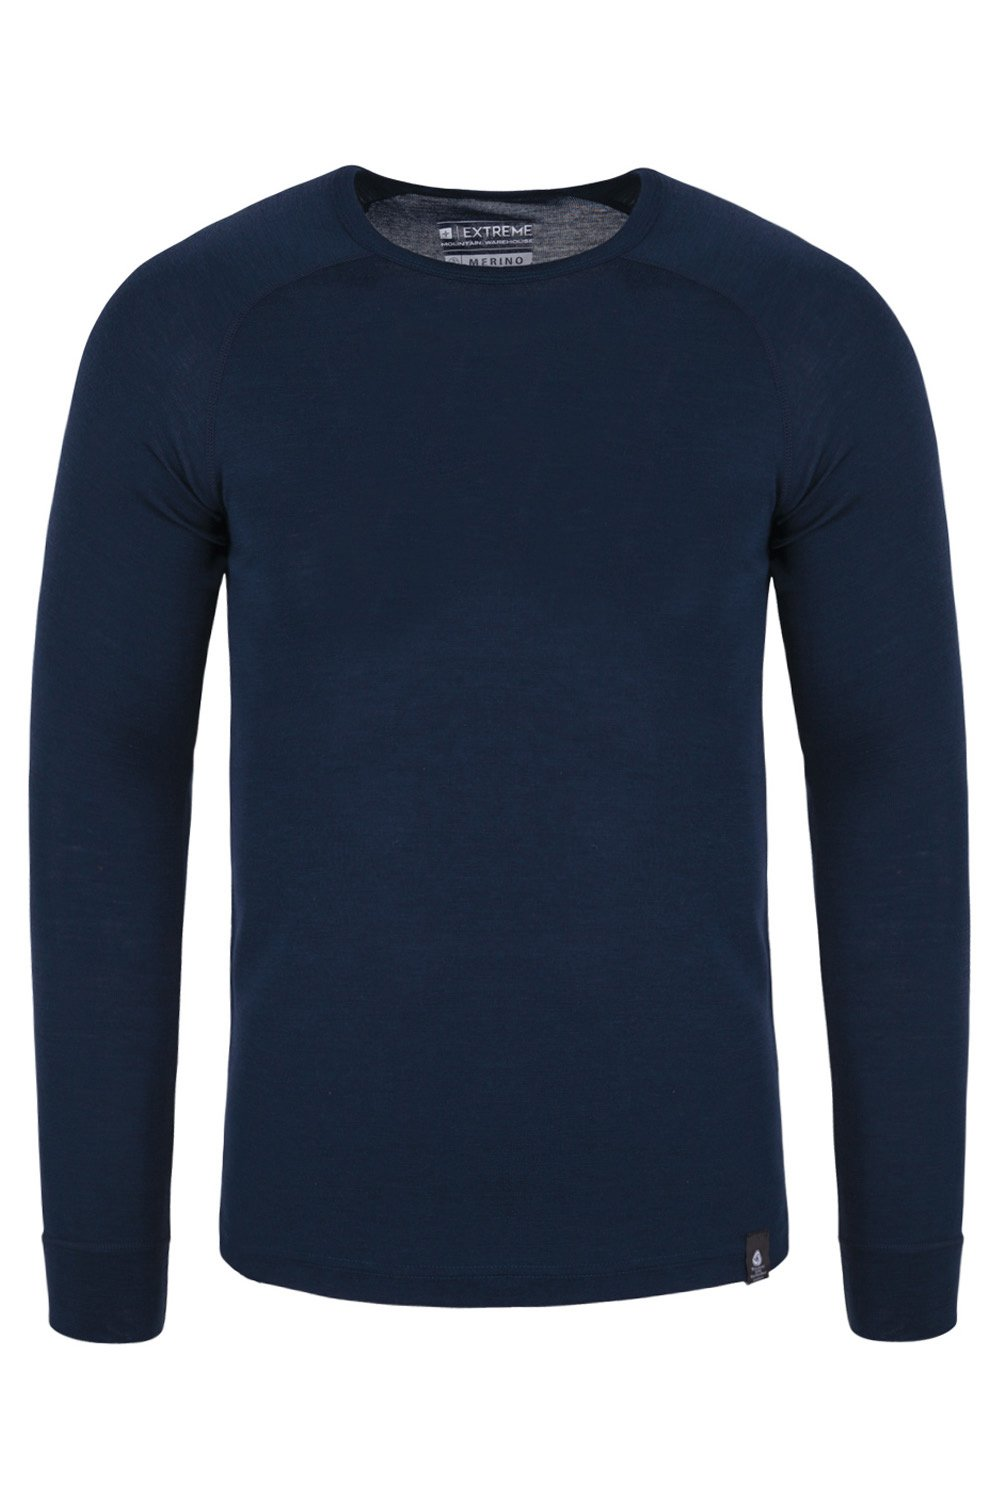 Mountain Warehouse Merino Mens Baselayer Top - Fast Dry T-Shirt